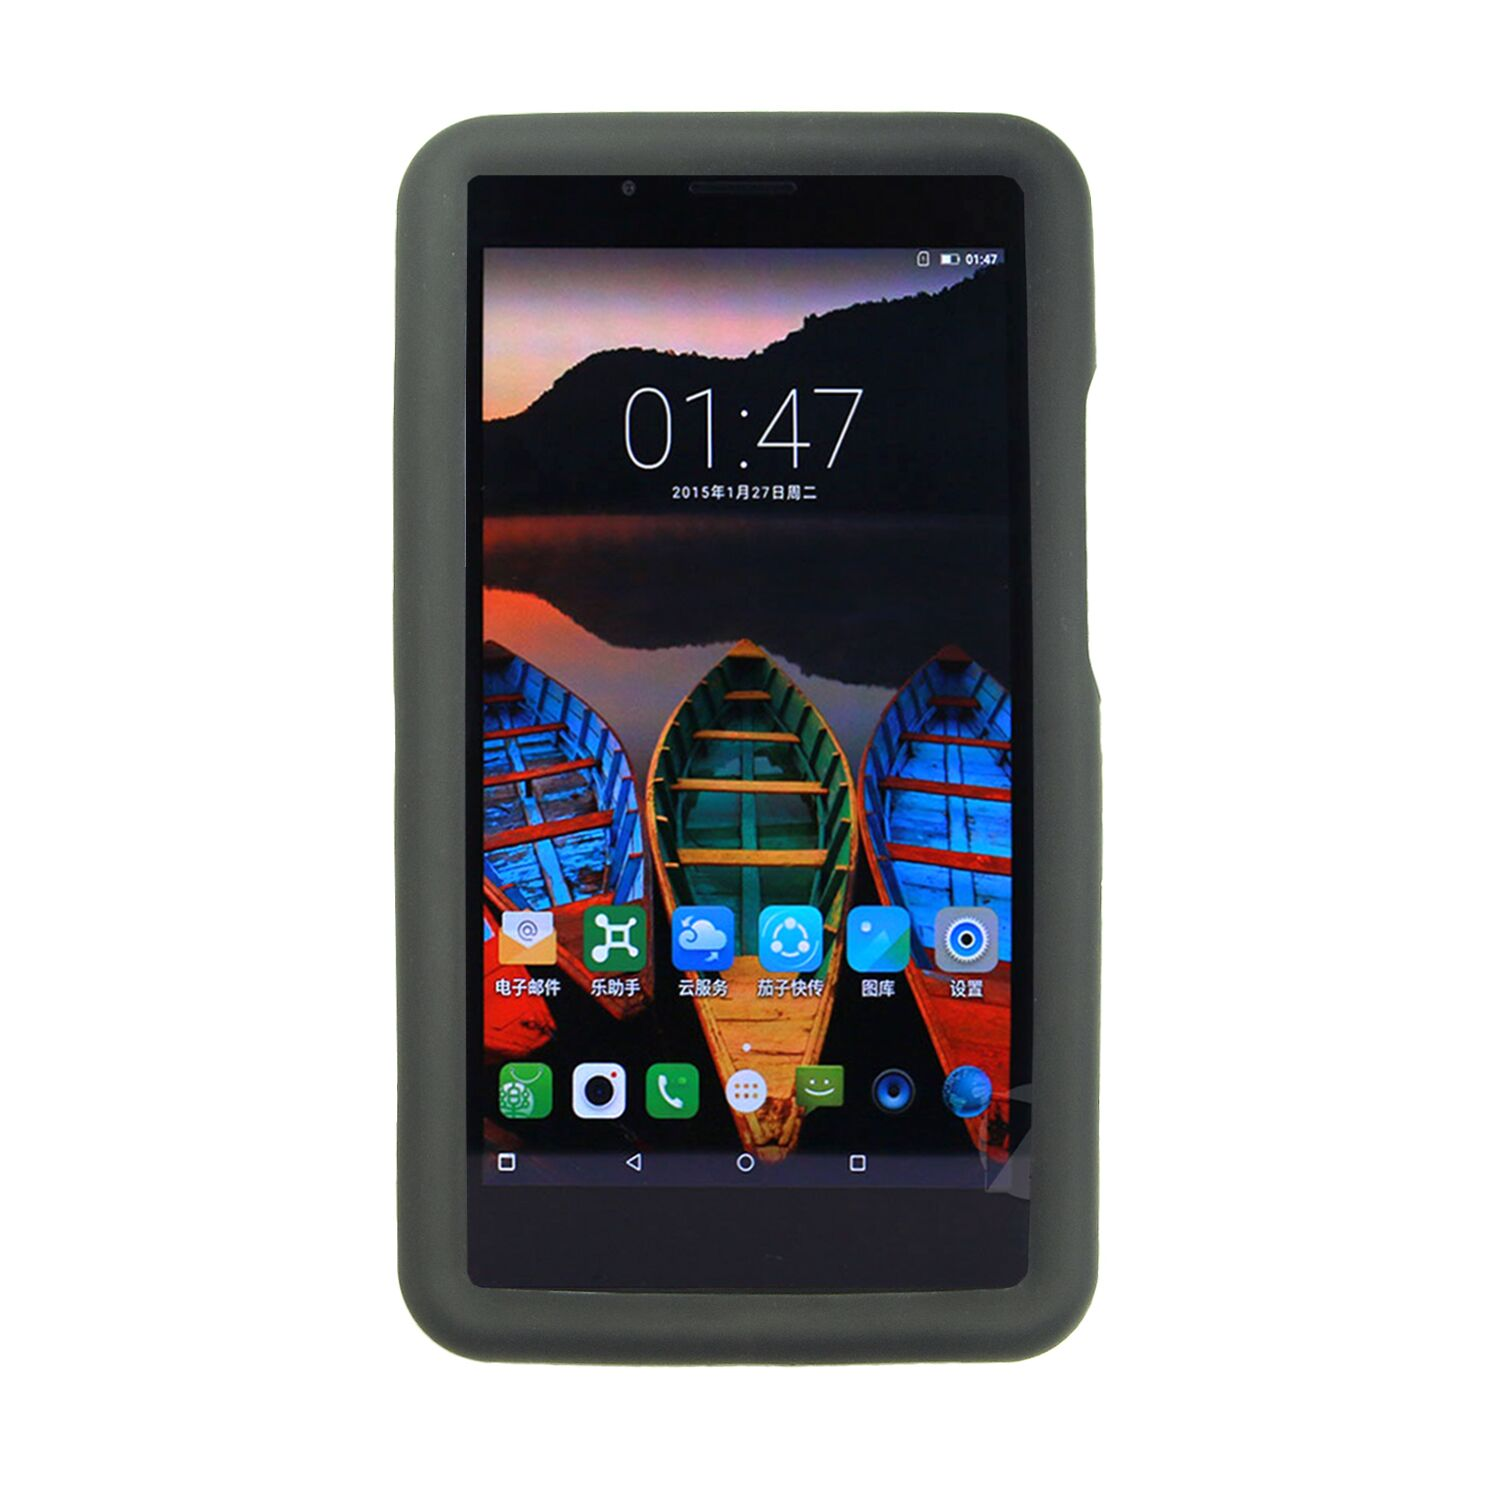 MingShore Silicone Rugged Case For Lenovo Tab3 7 Plus With Handstrap Cover For Lenovo Tablet 3 TB-7703X/F/N 7.0 Tablet Case english world level 7 student s book